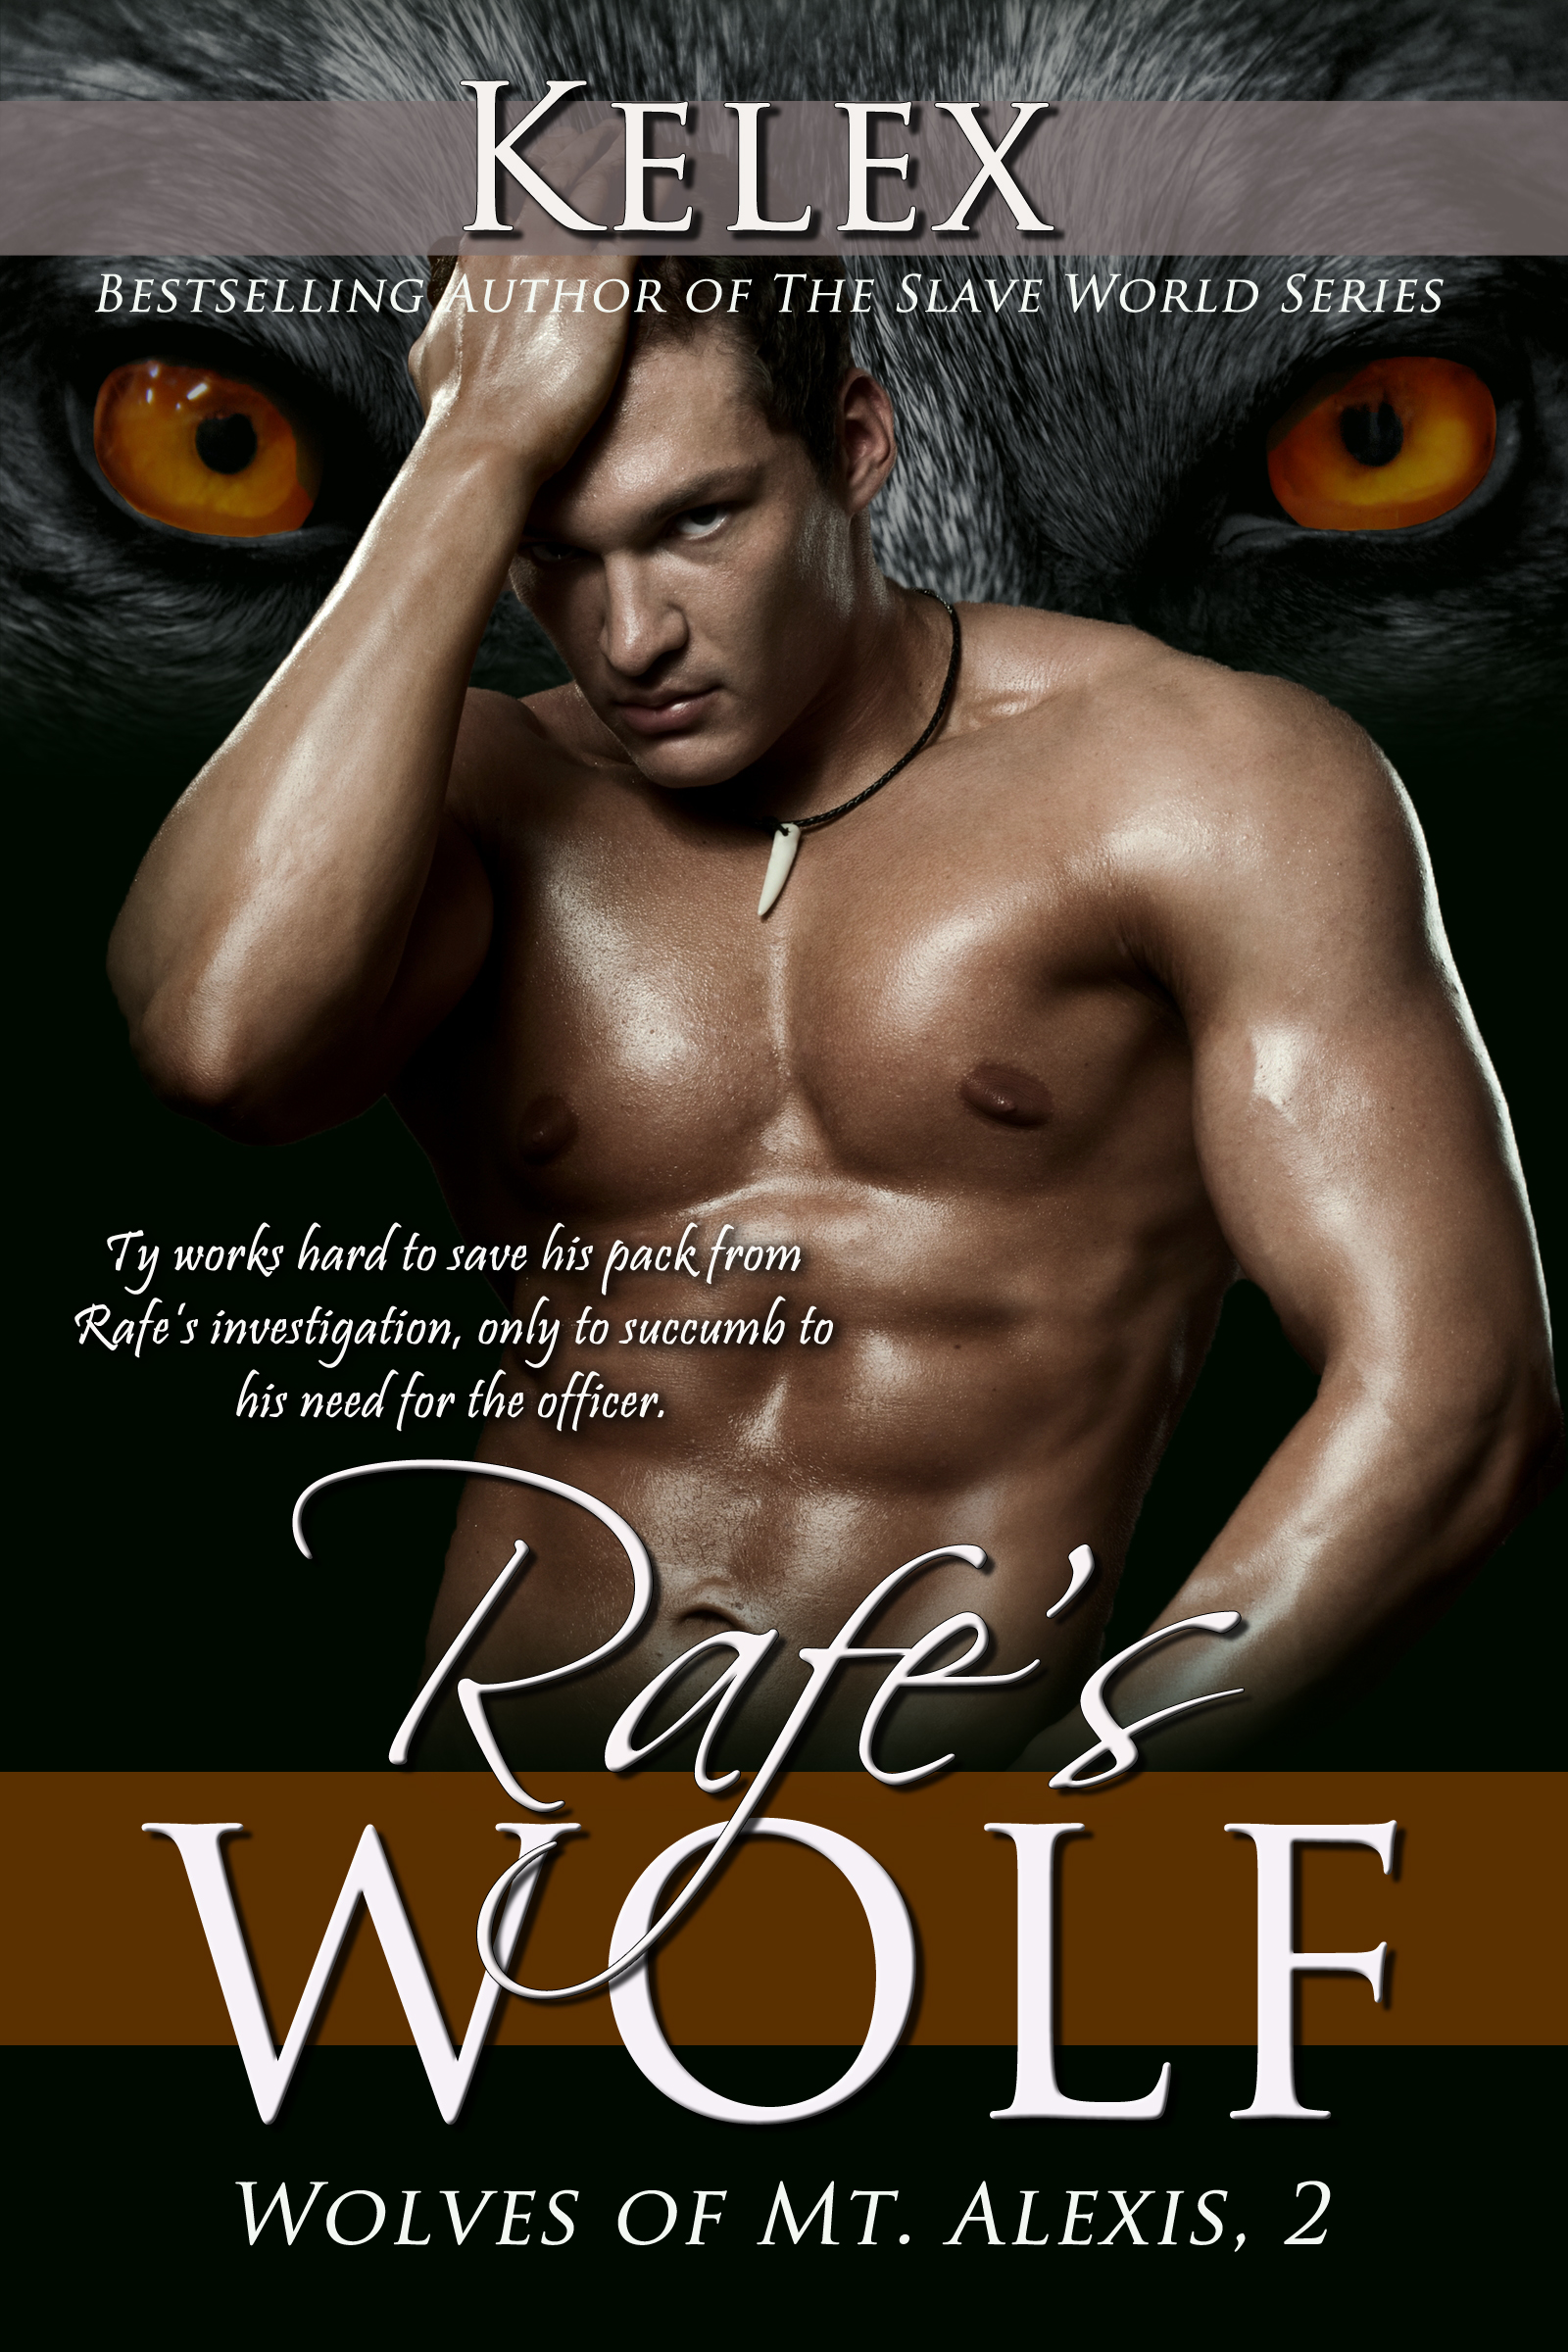 Kelex - Rafe's Wolf (Wolves of Mt. Alexis, 2)